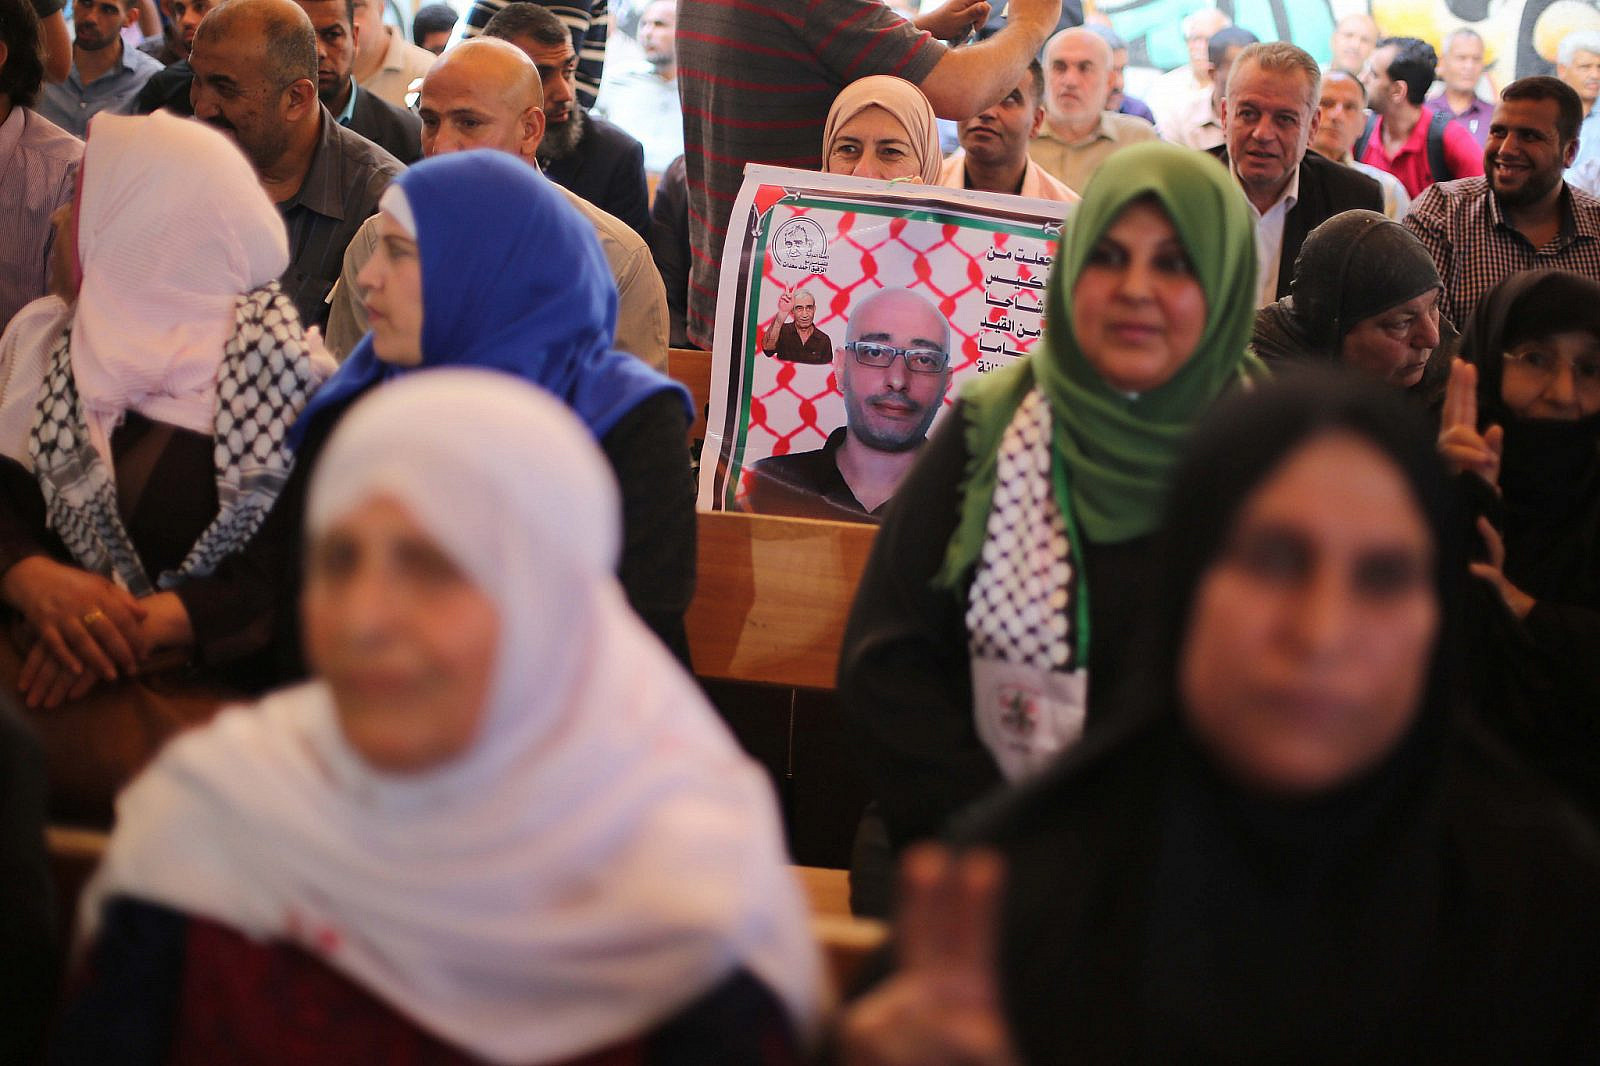 Palestinians protesting in solidarity with prisoners held in Israeli jails, in front of the Red Cross office, in Gaza City, June 10, 2019. (Hassan Jedi/Flash90)